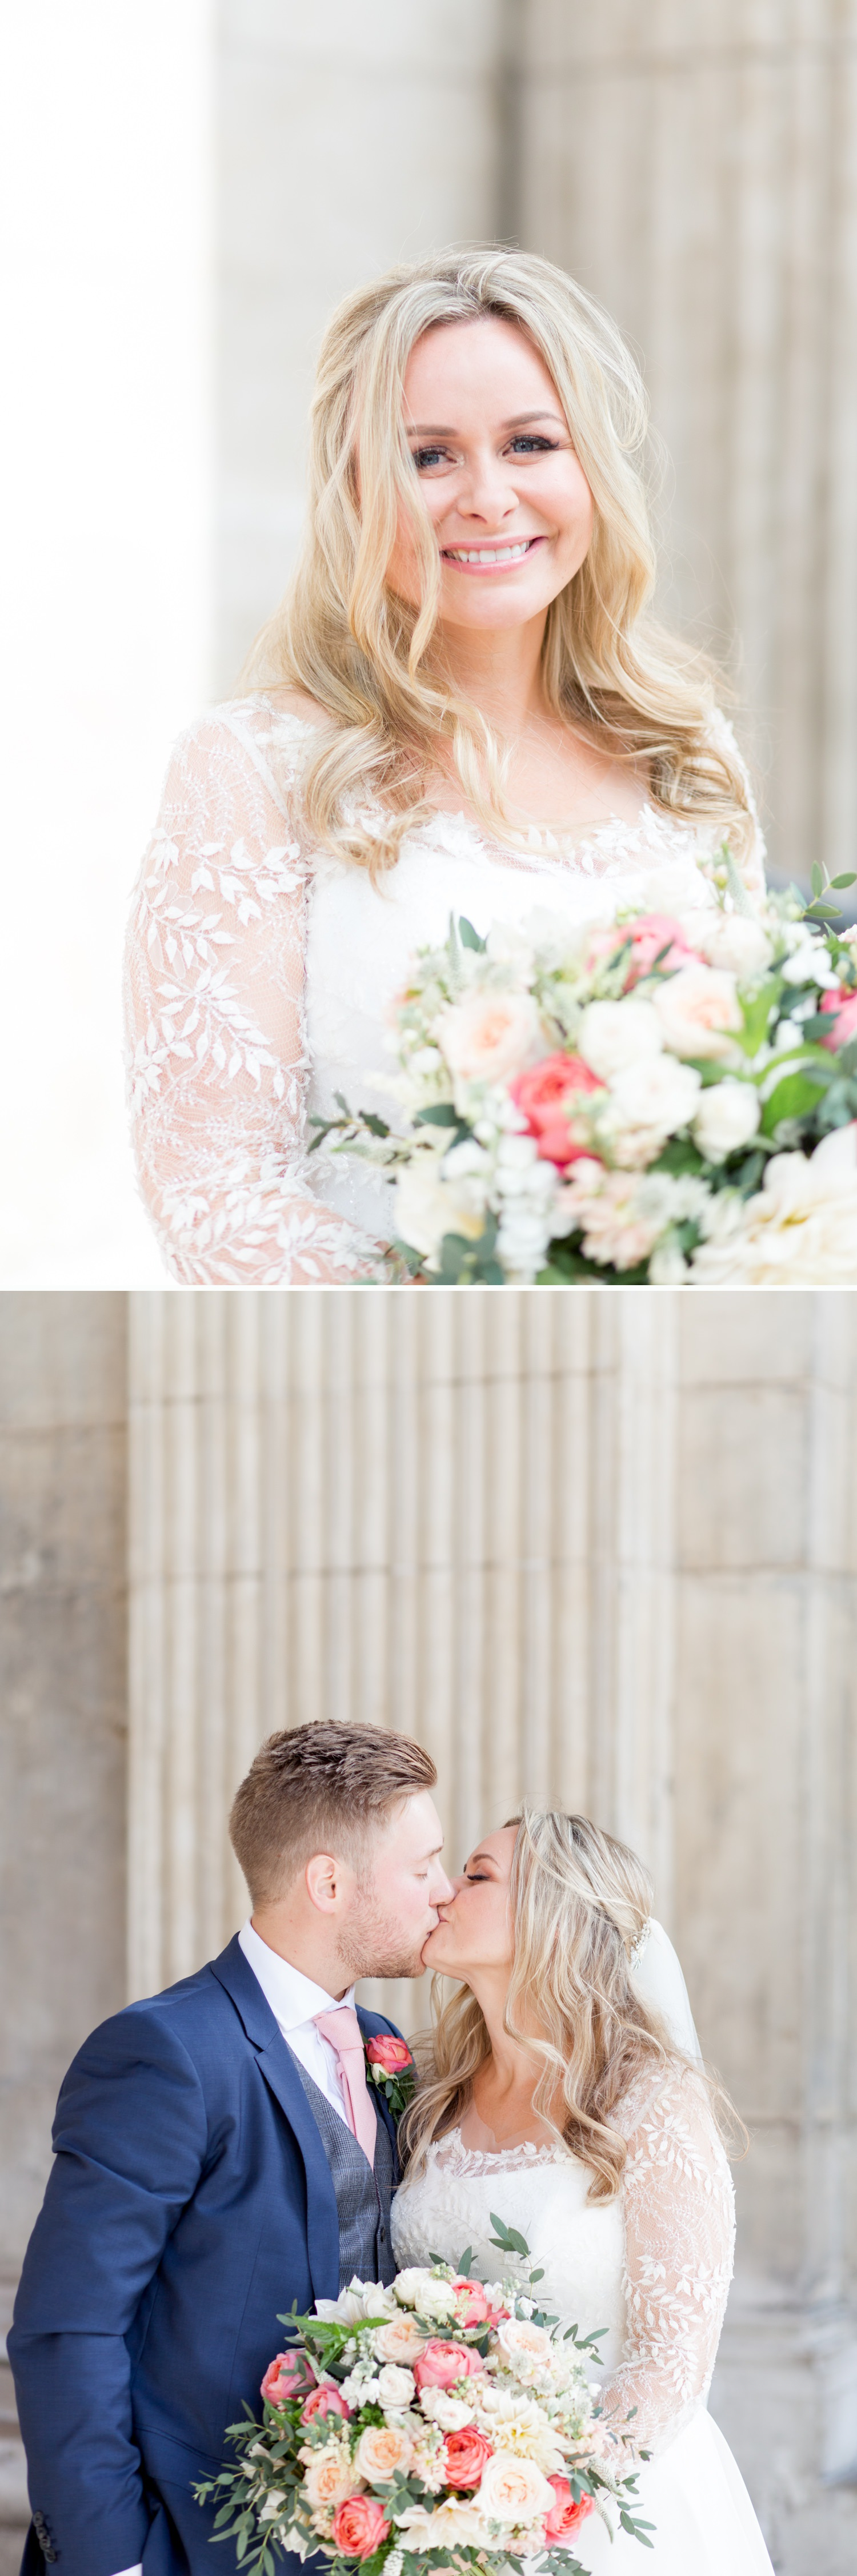 Charlotte & Adam's St. Paul's Cathedral wedding - a bride and groom kiss